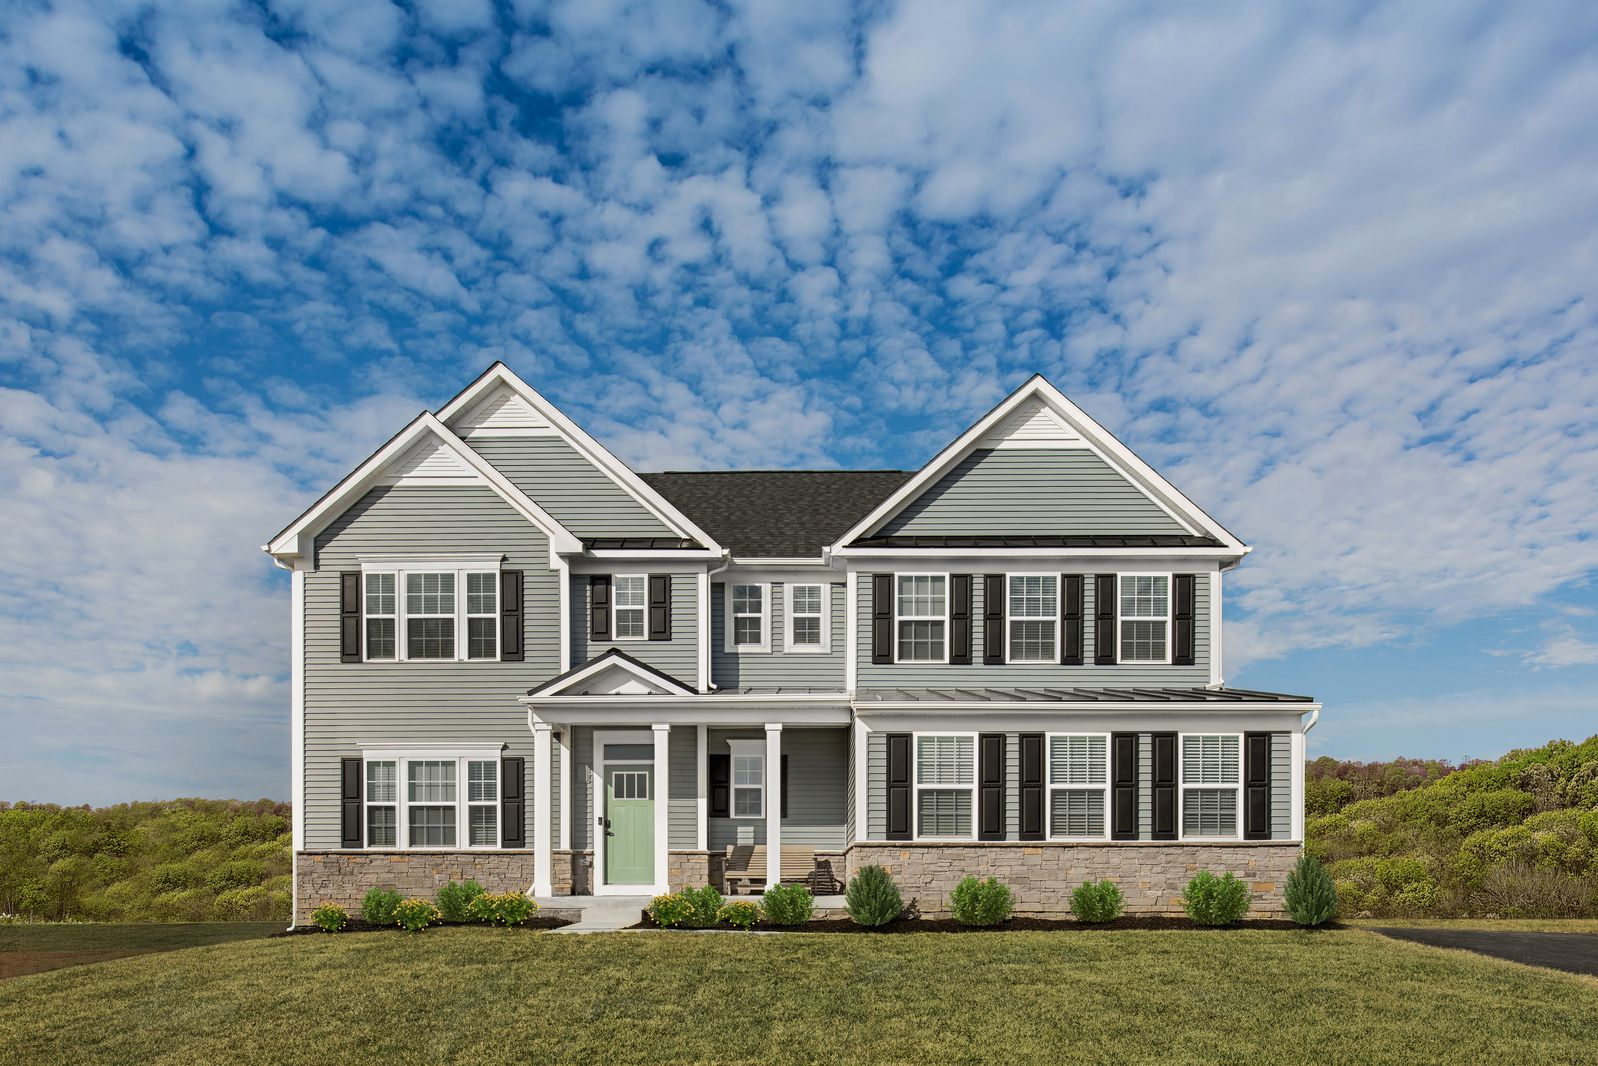 Welcome to Monarch Woods:New homes on 1+ acres in Tabernacle with all the space you need, from the mid $400s.Click here to schedule your appointment today!